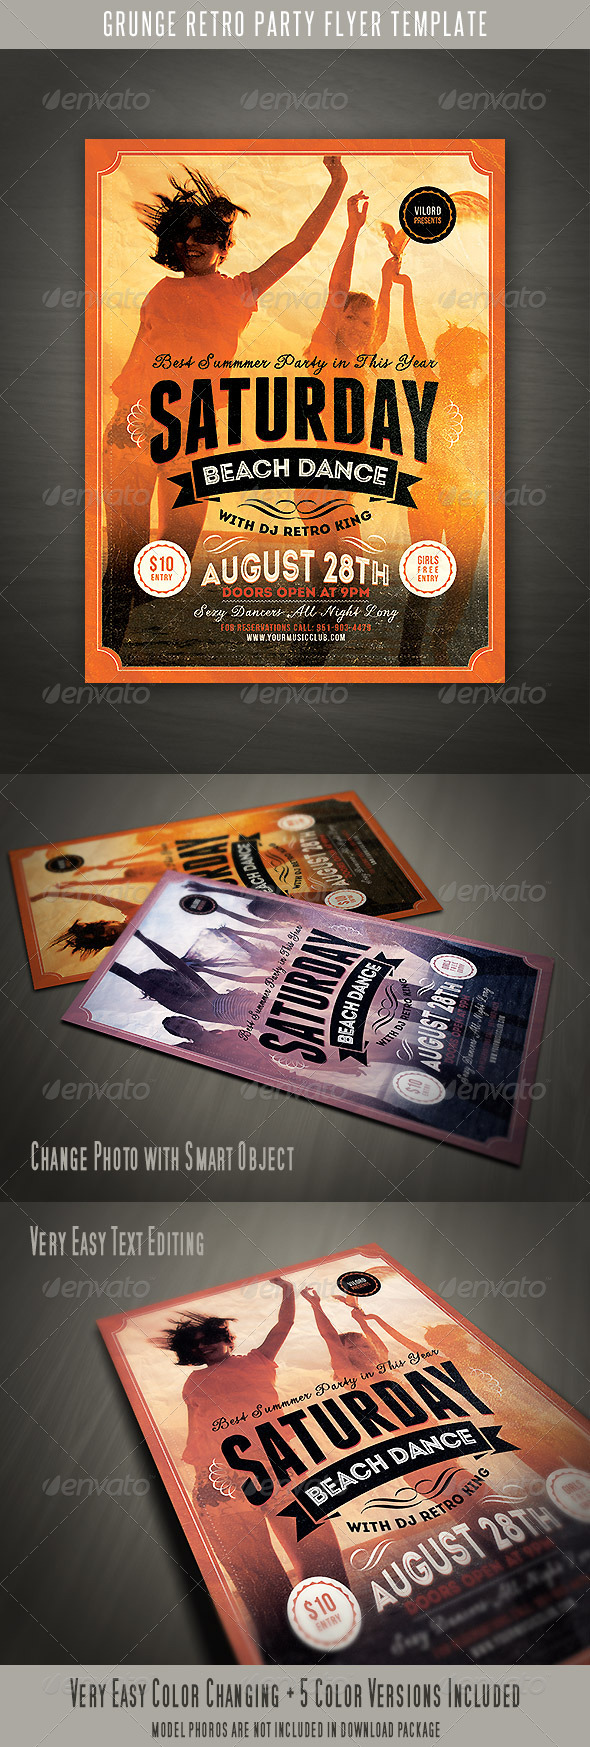 Grunge Retro Party Flyer - Events Flyers